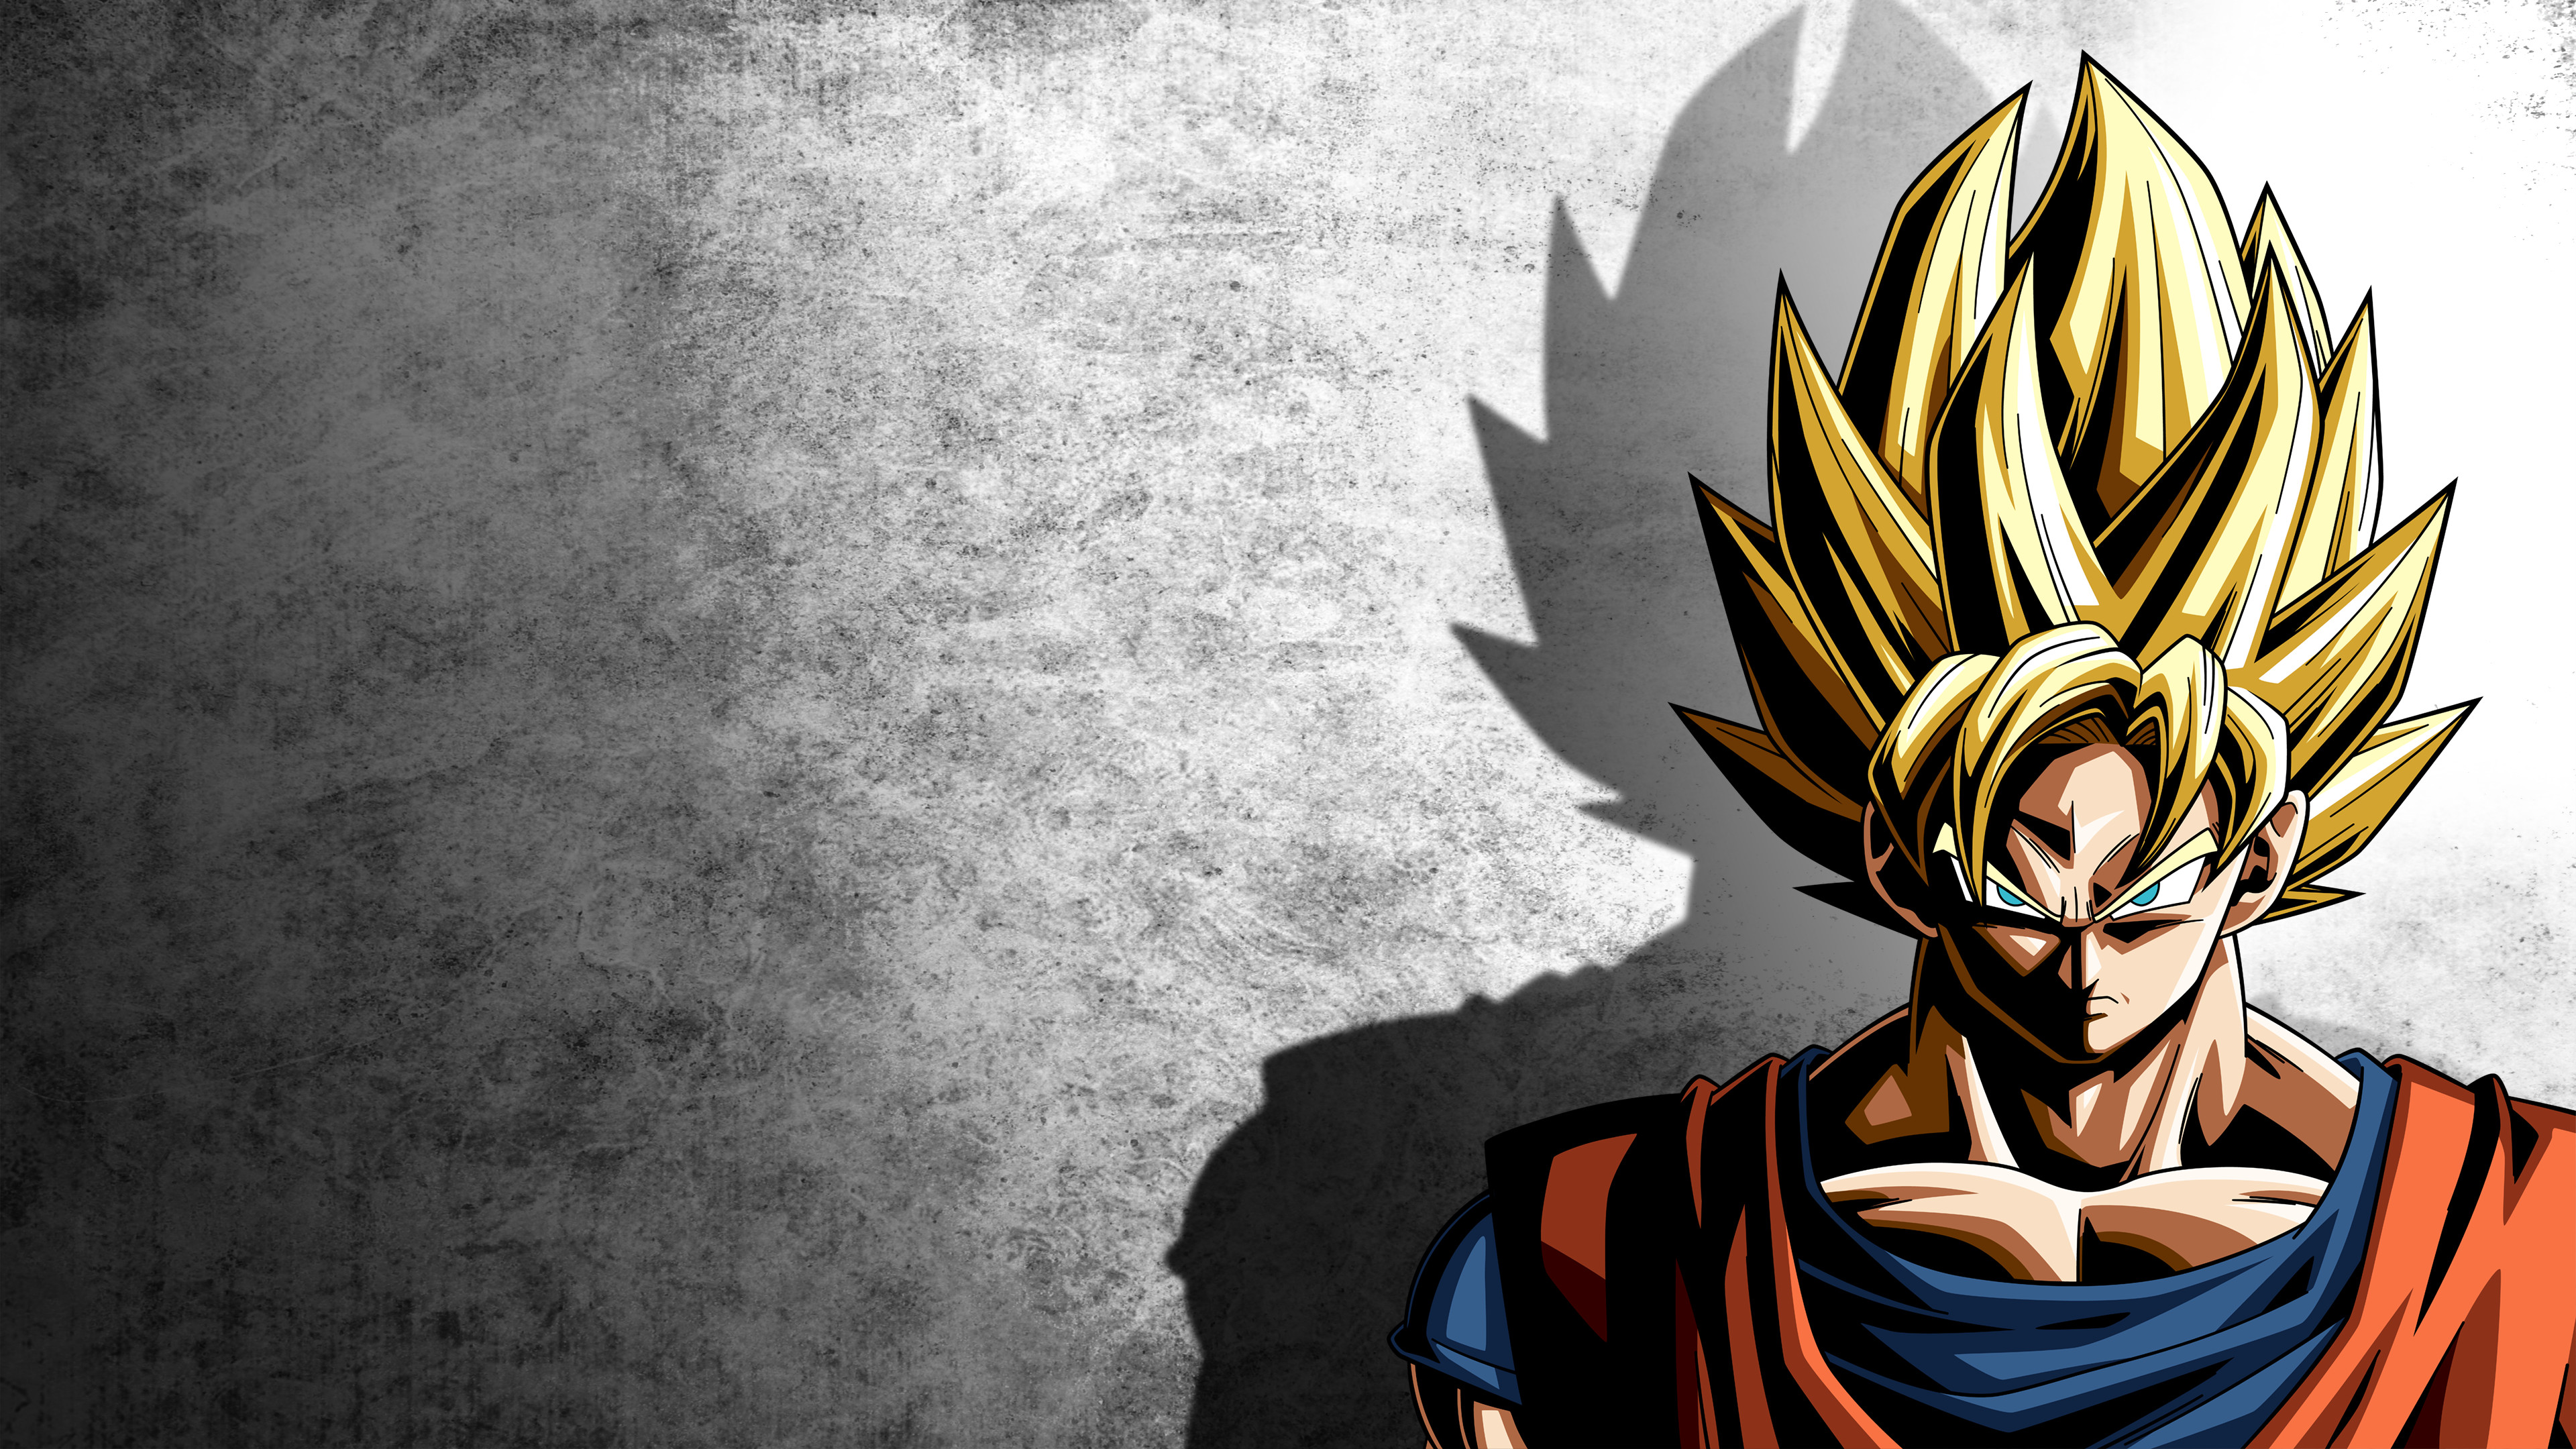 Dragon Ball Hd Wallpapers 71 Images